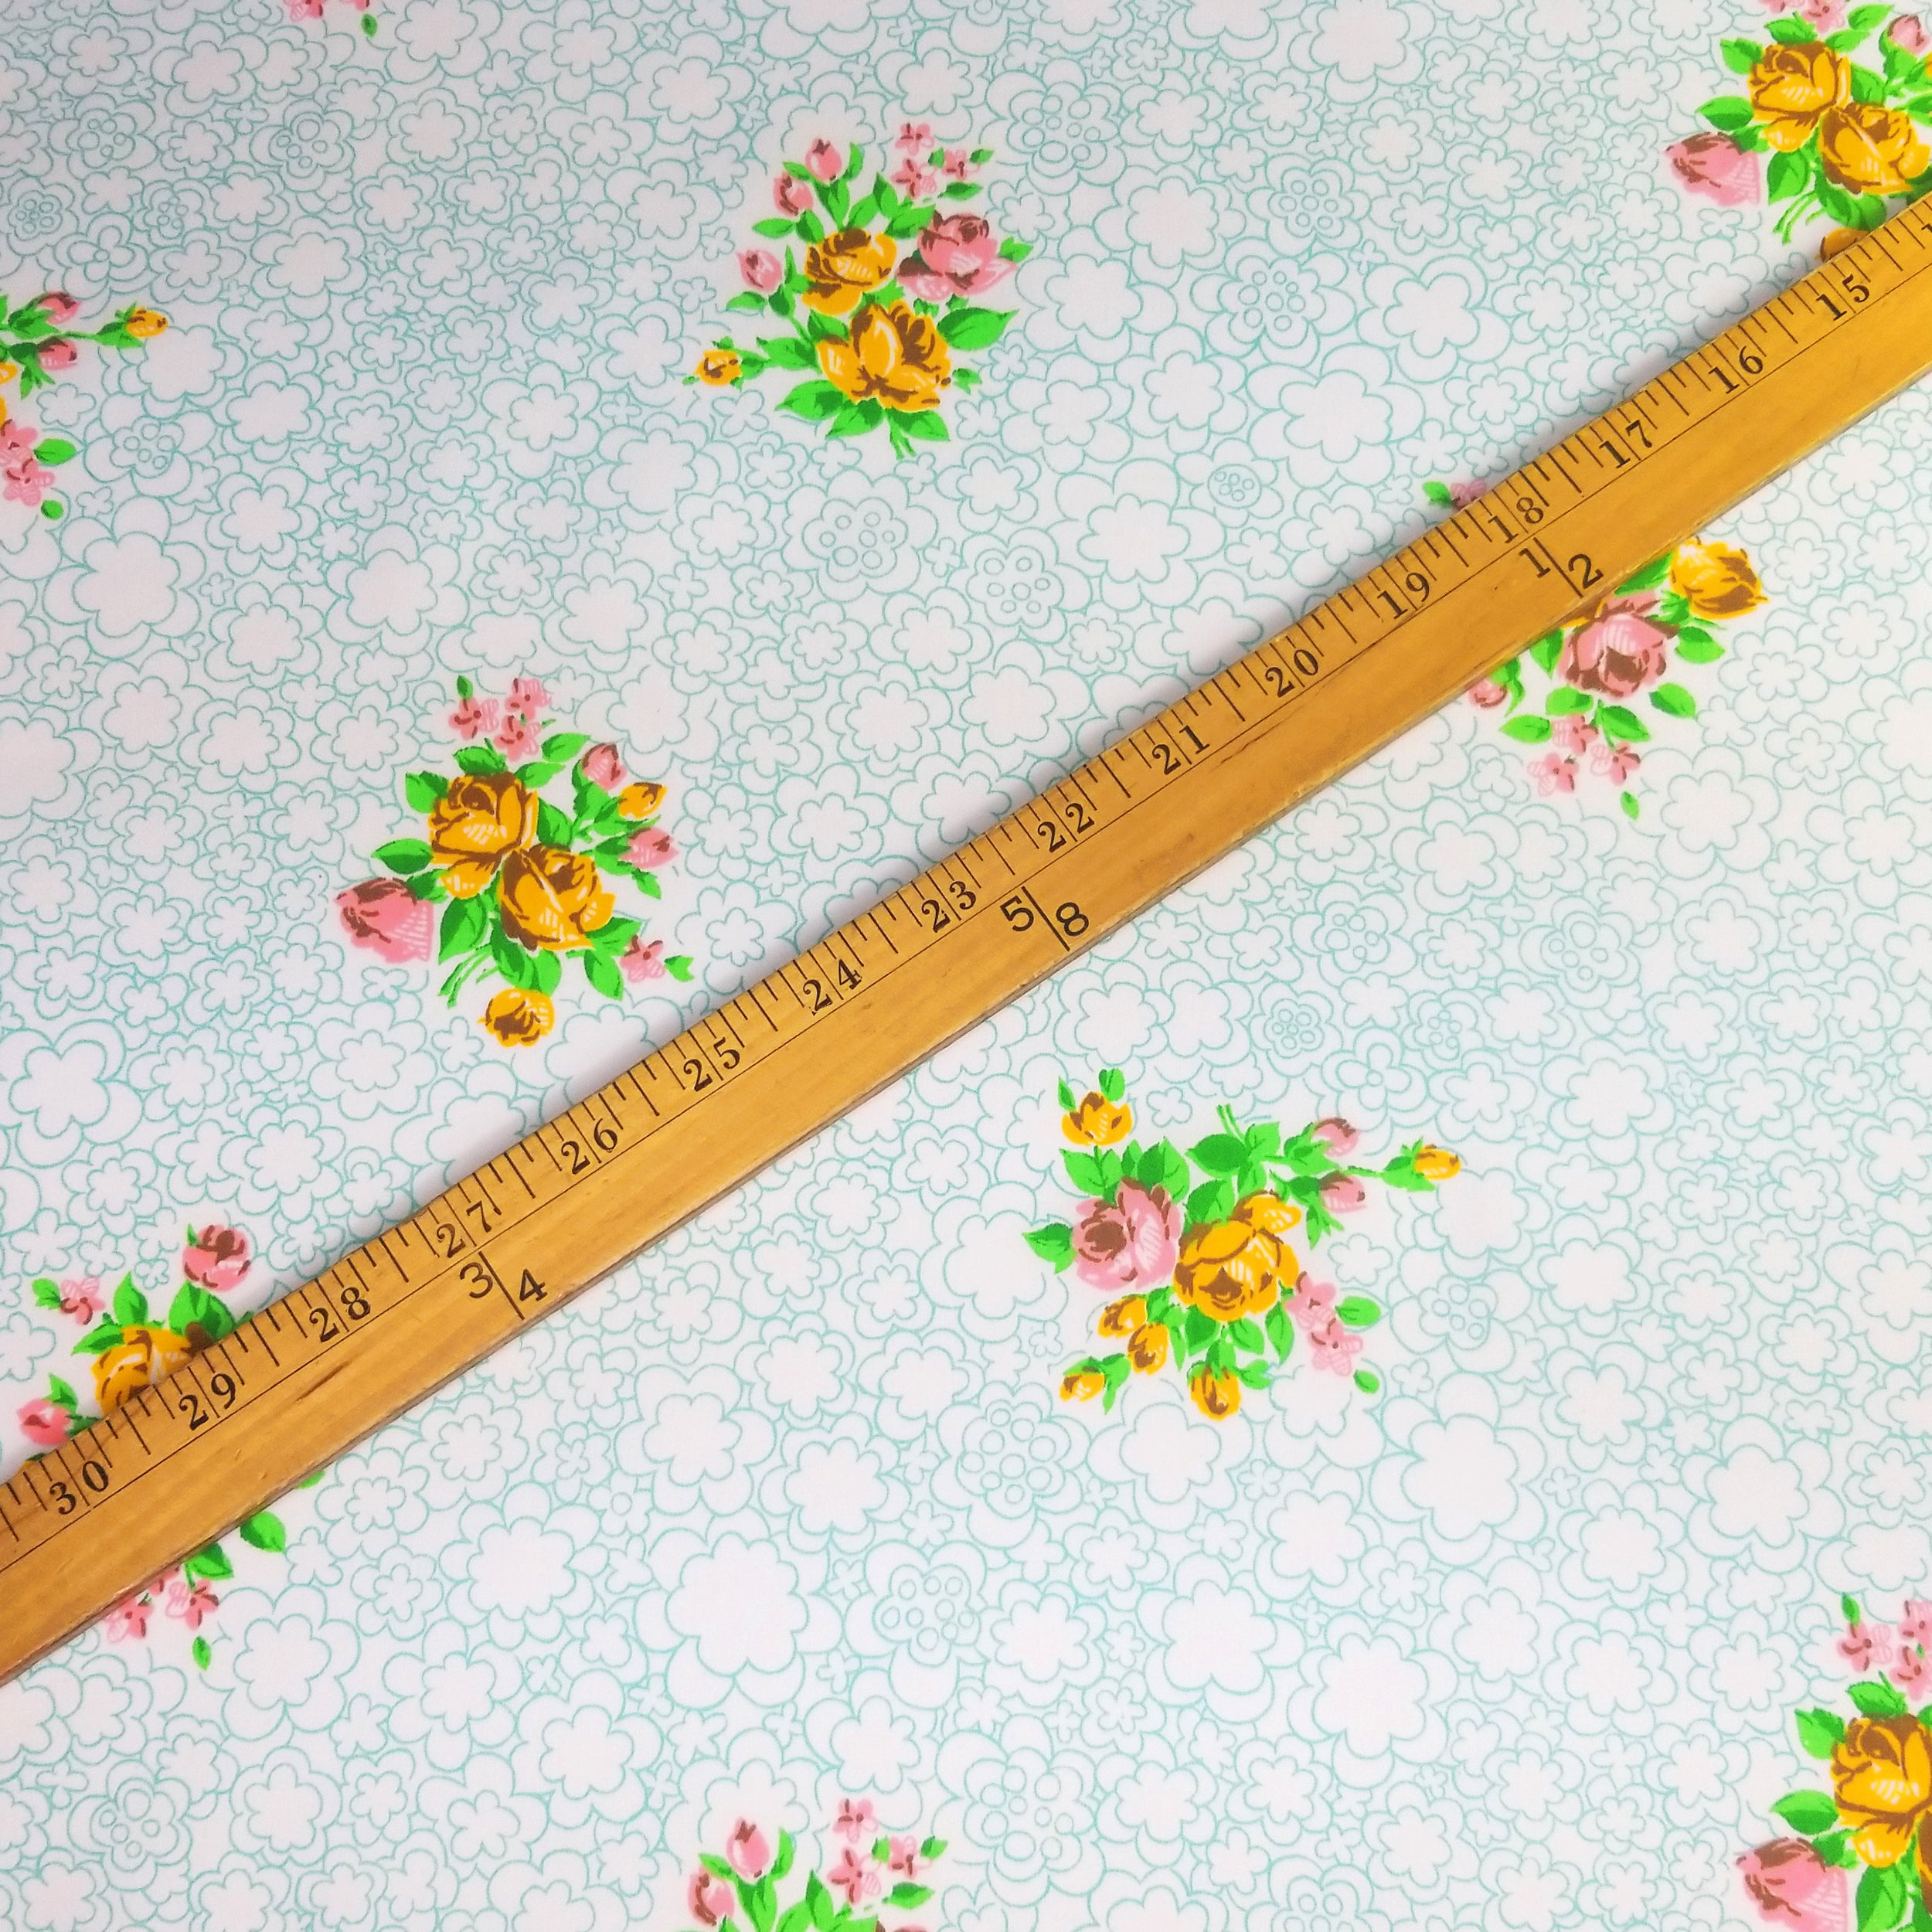 VINTAGE FABRIC BABY BOLT HALF-YARD -  SEVENTIES' FLORAL BOUQUET ON WHITE WITH FLUFFY SEAFOAM FLOWER CLOUDS